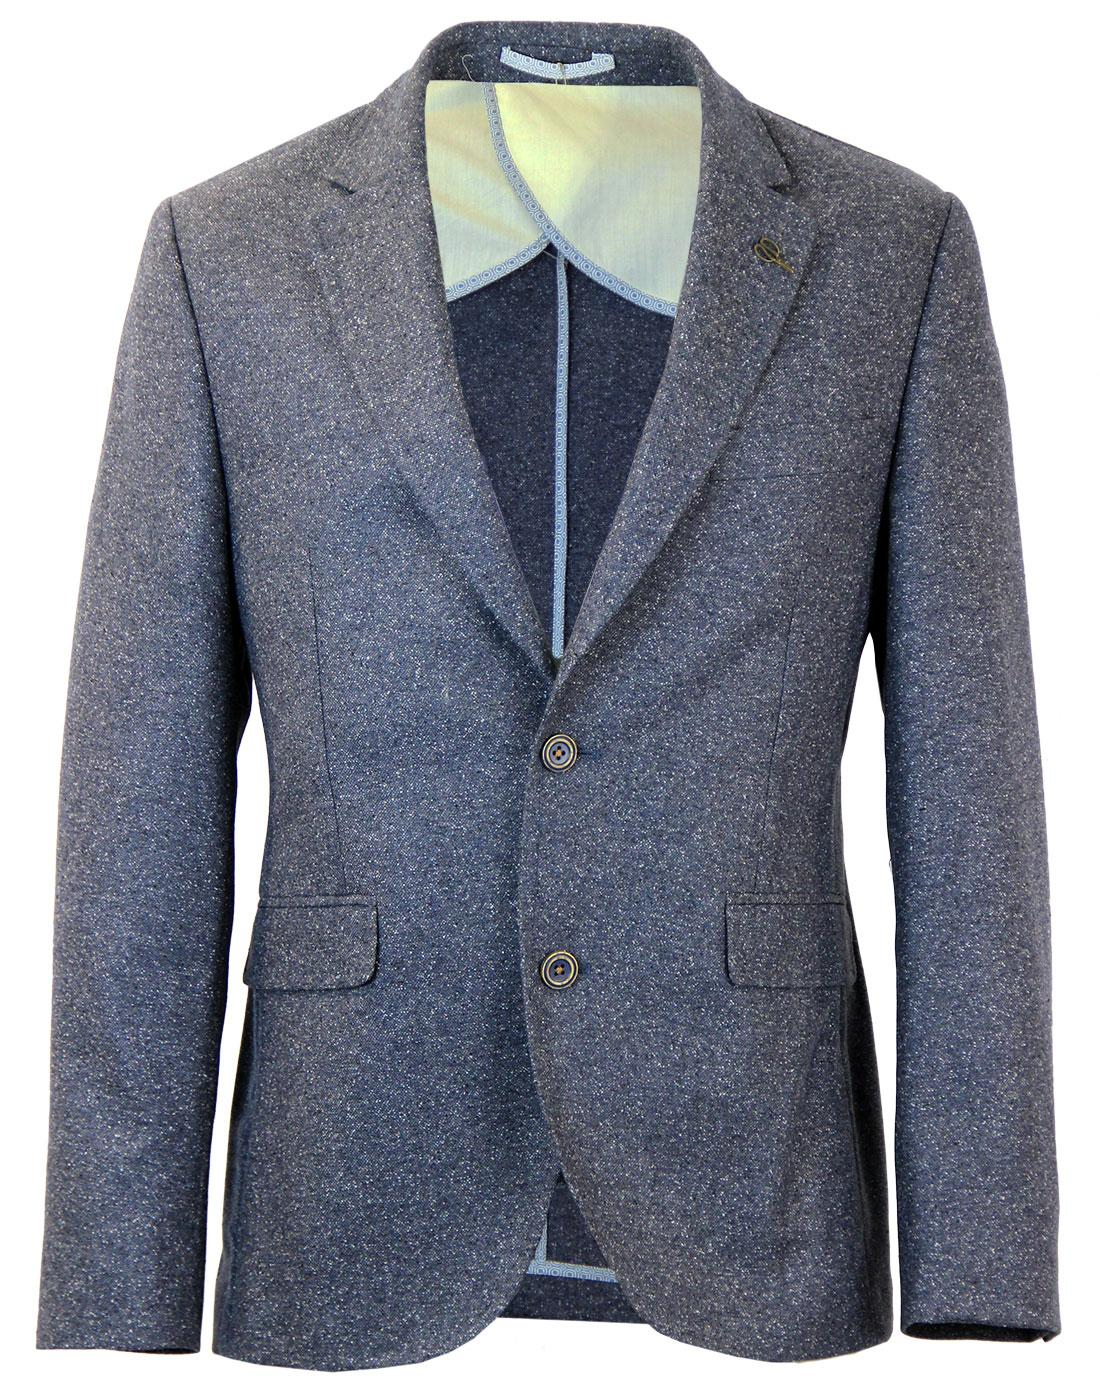 GIBSON LONDON 2 Button Donegal Suit Jacket BLUE